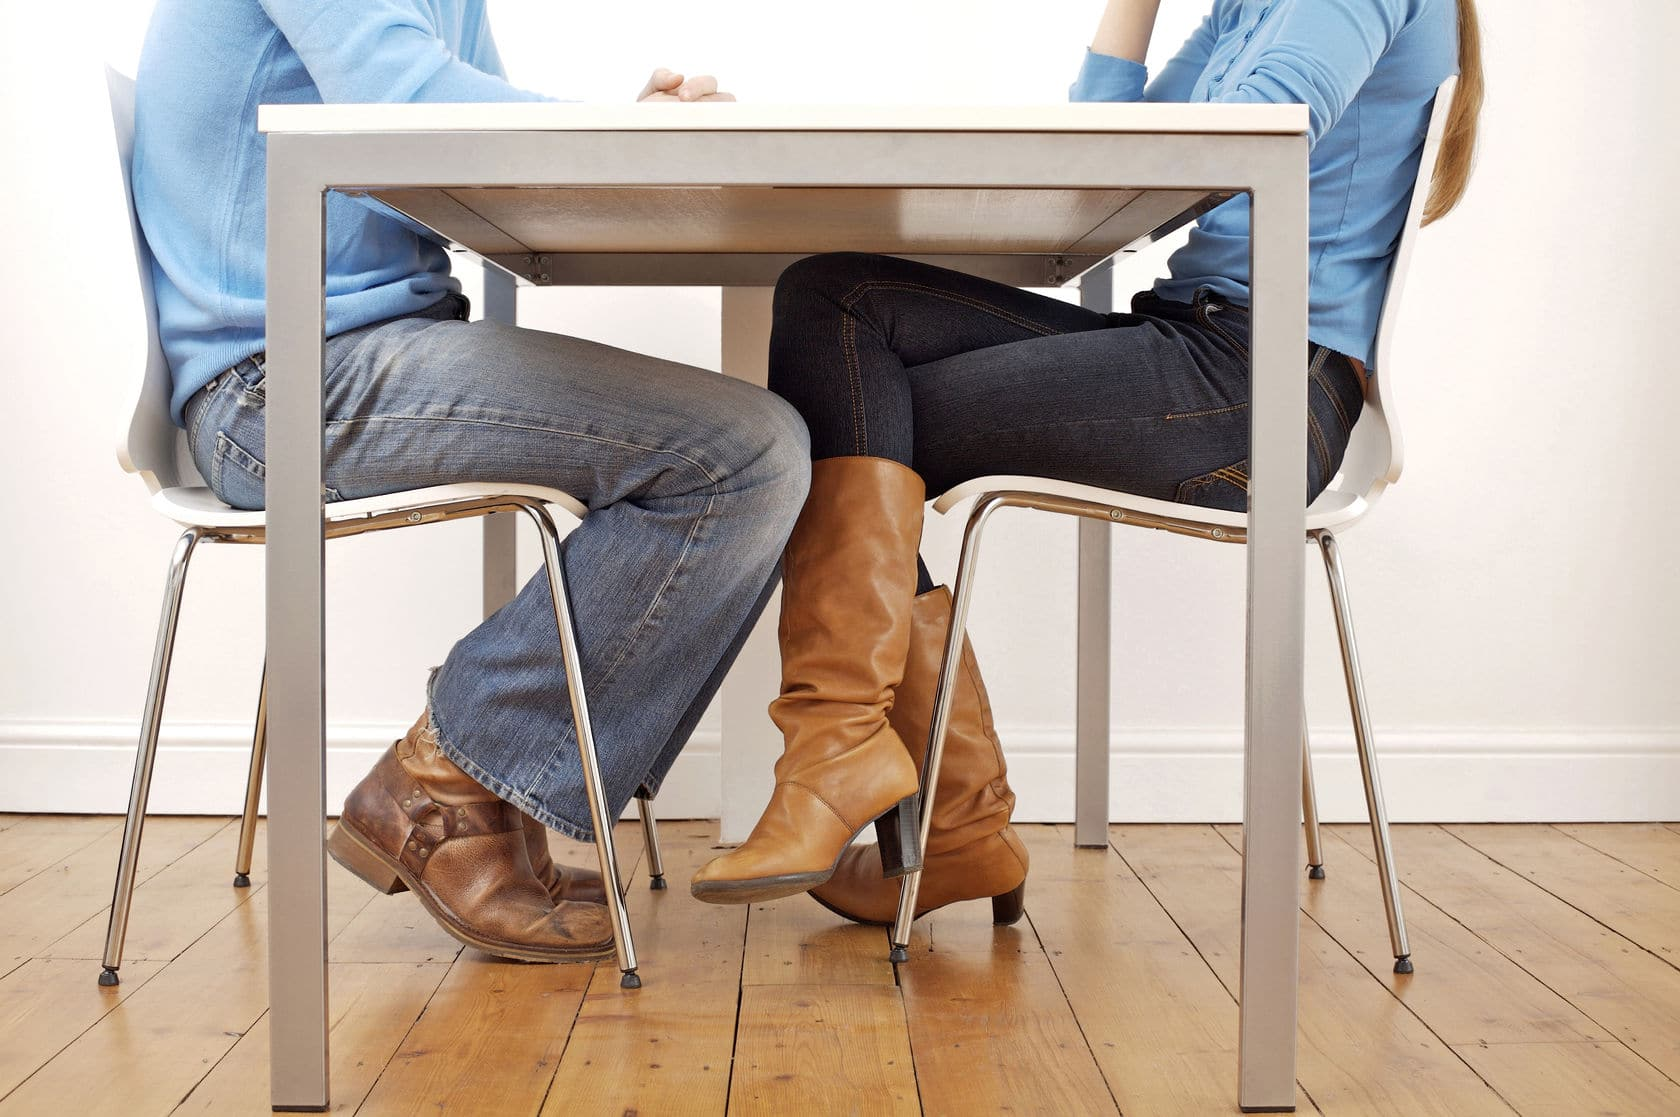 Sit down with your spouse and hash out your budget concerns together.